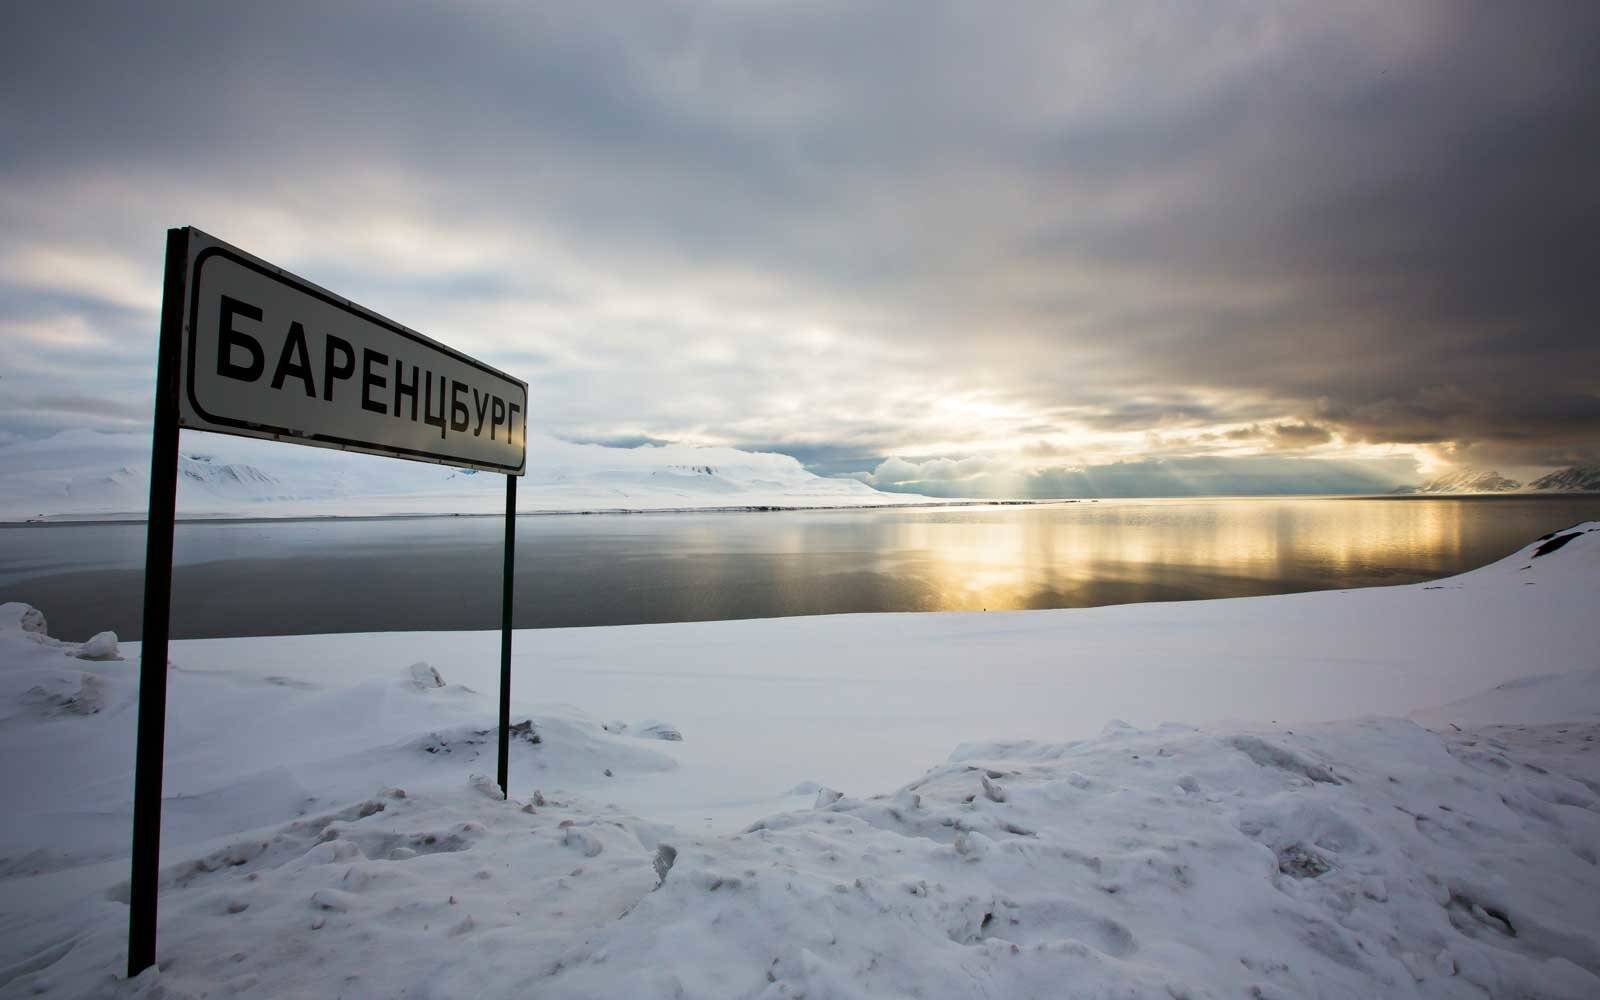 Russian town sign to the coal mine town Barentsburg, in Svalbard